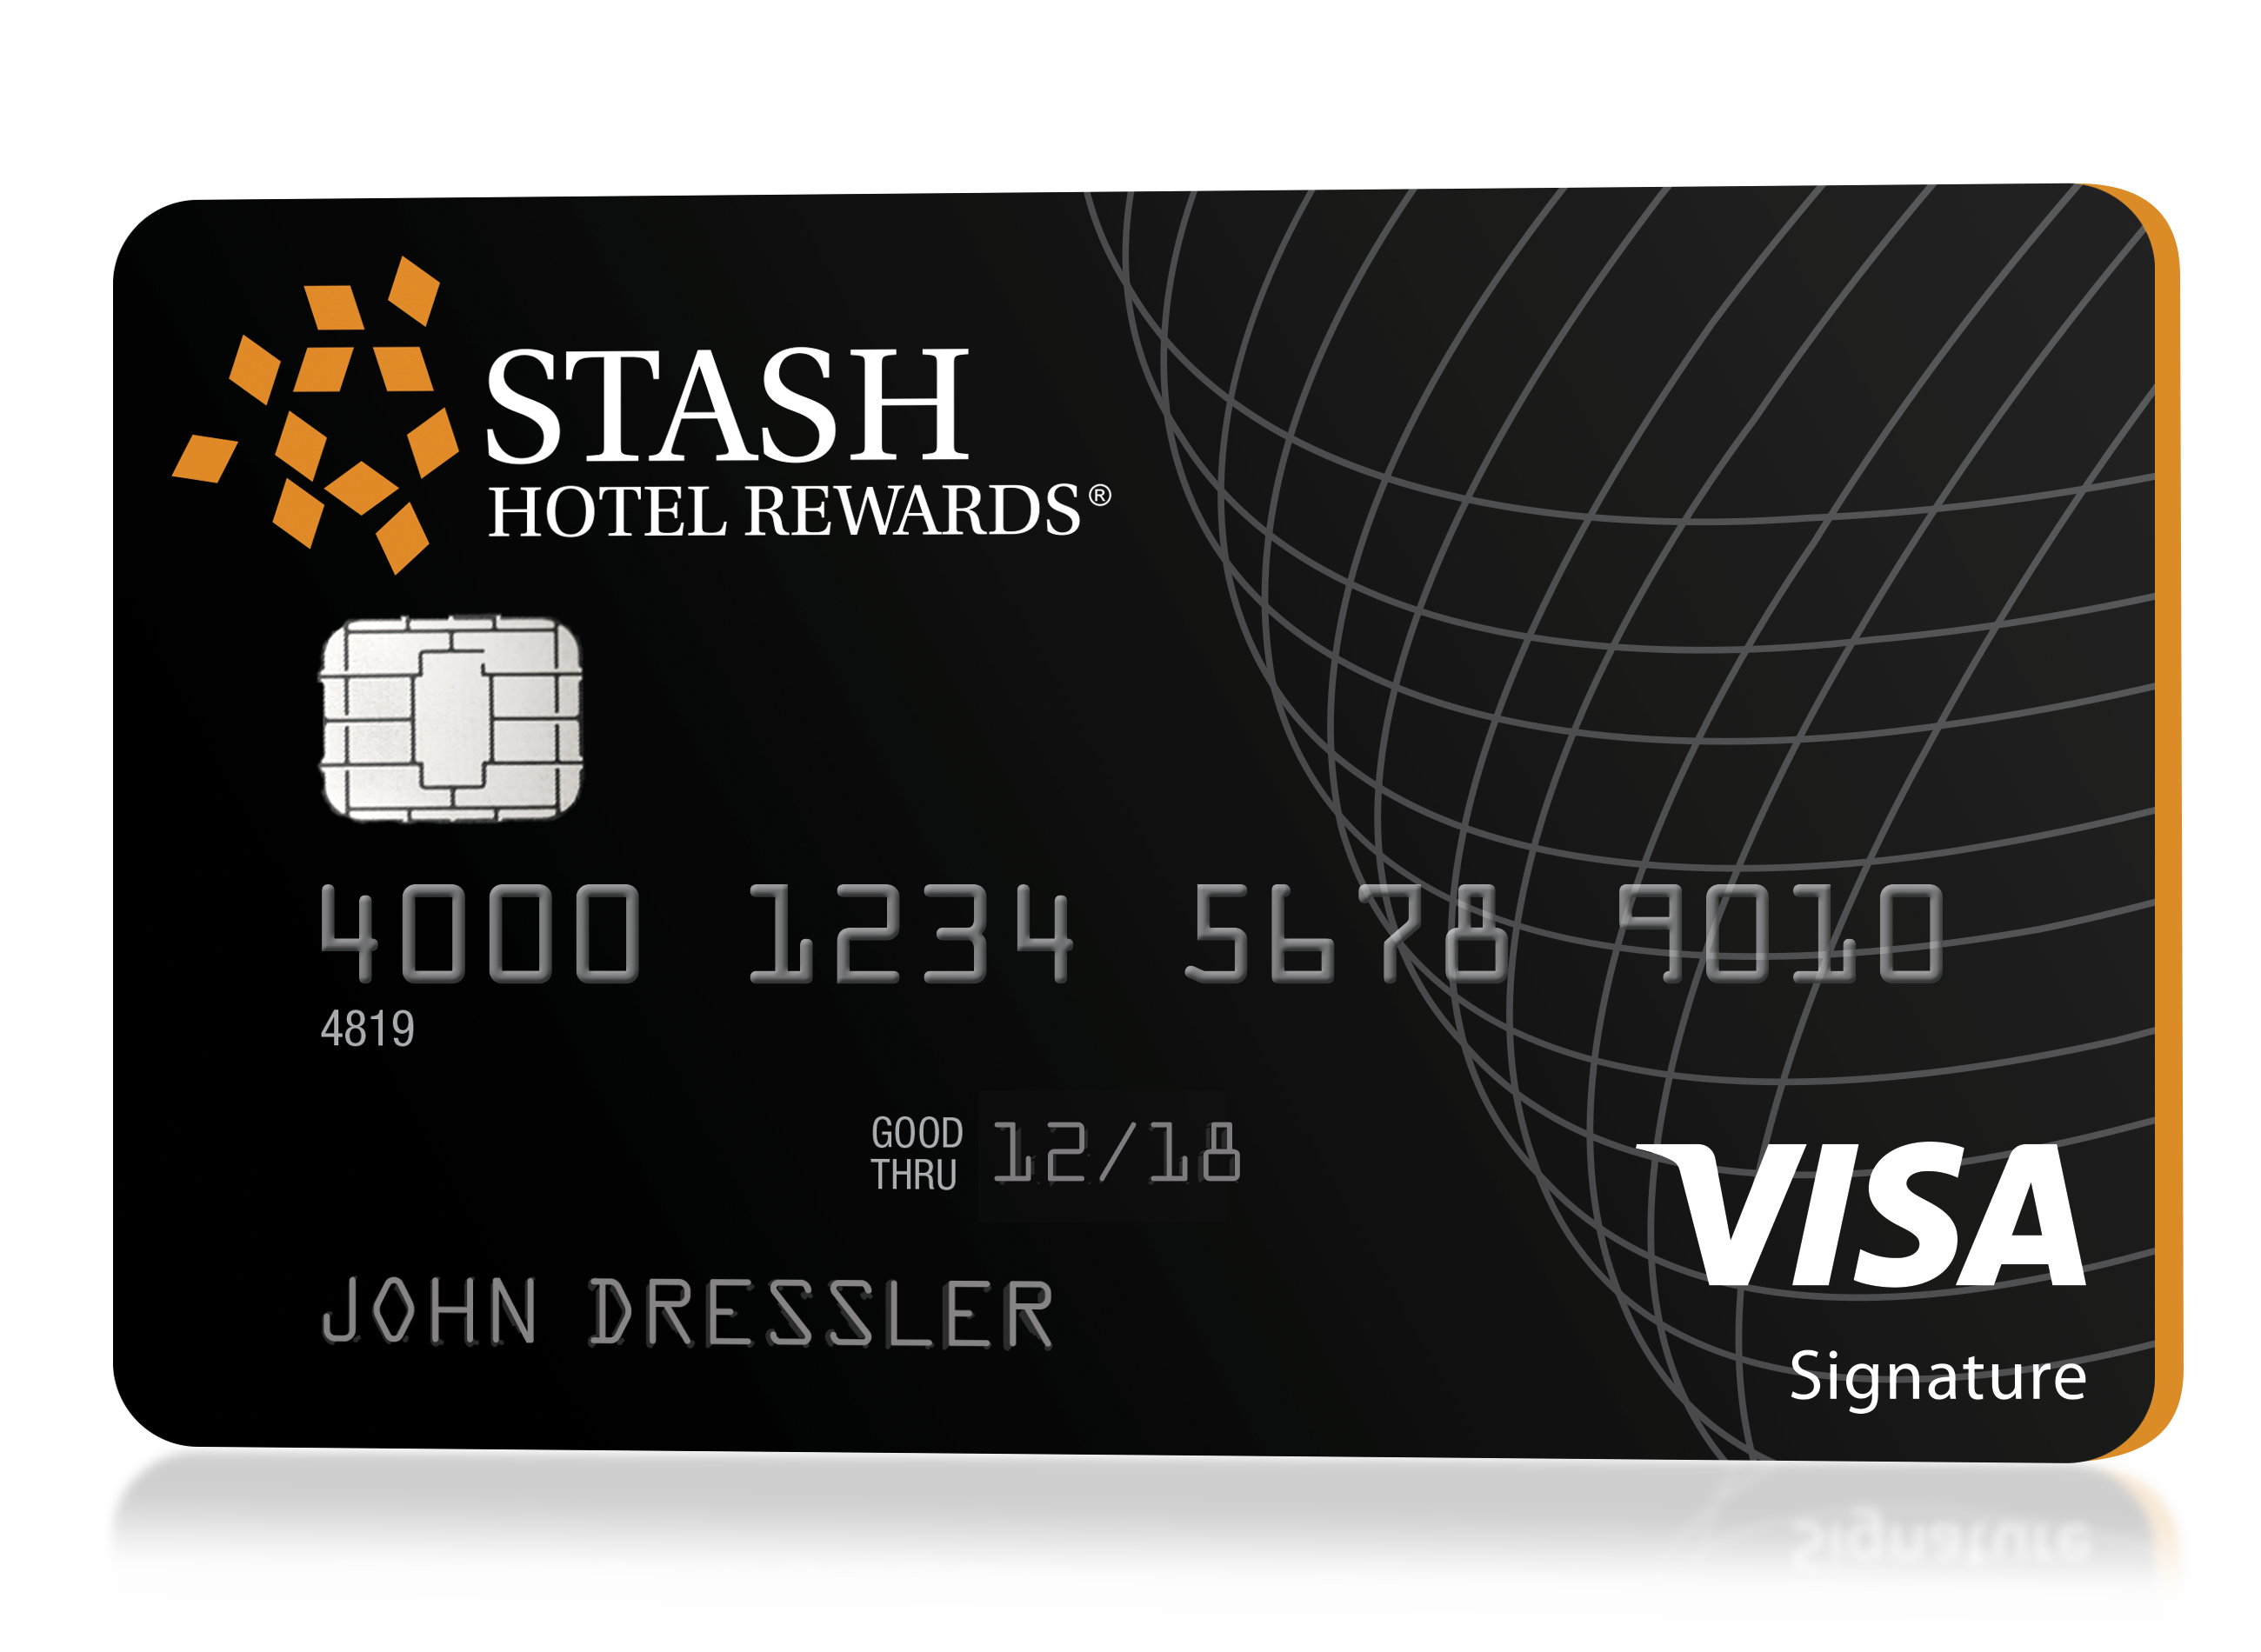 stash hotel rewards no blackouts no expirations